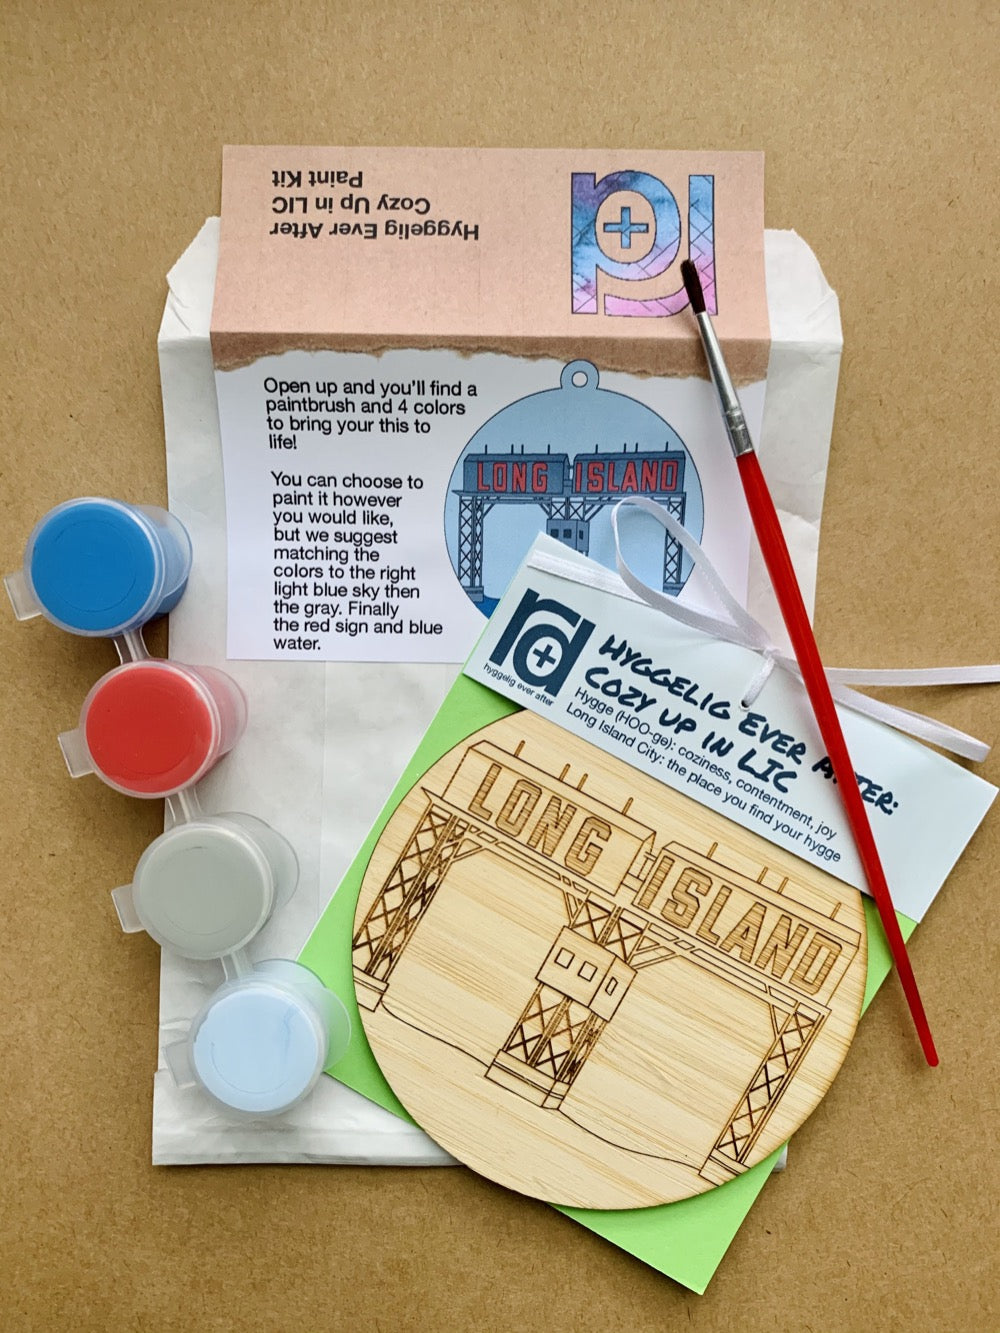 Shown laying on craft paper is the packaging and contents of this DIY Paint Kit. There is a paper envelope with instructions, a paintbrush, a set of 4 paint wells and a wall hanging with a laser cut NYC landmark.